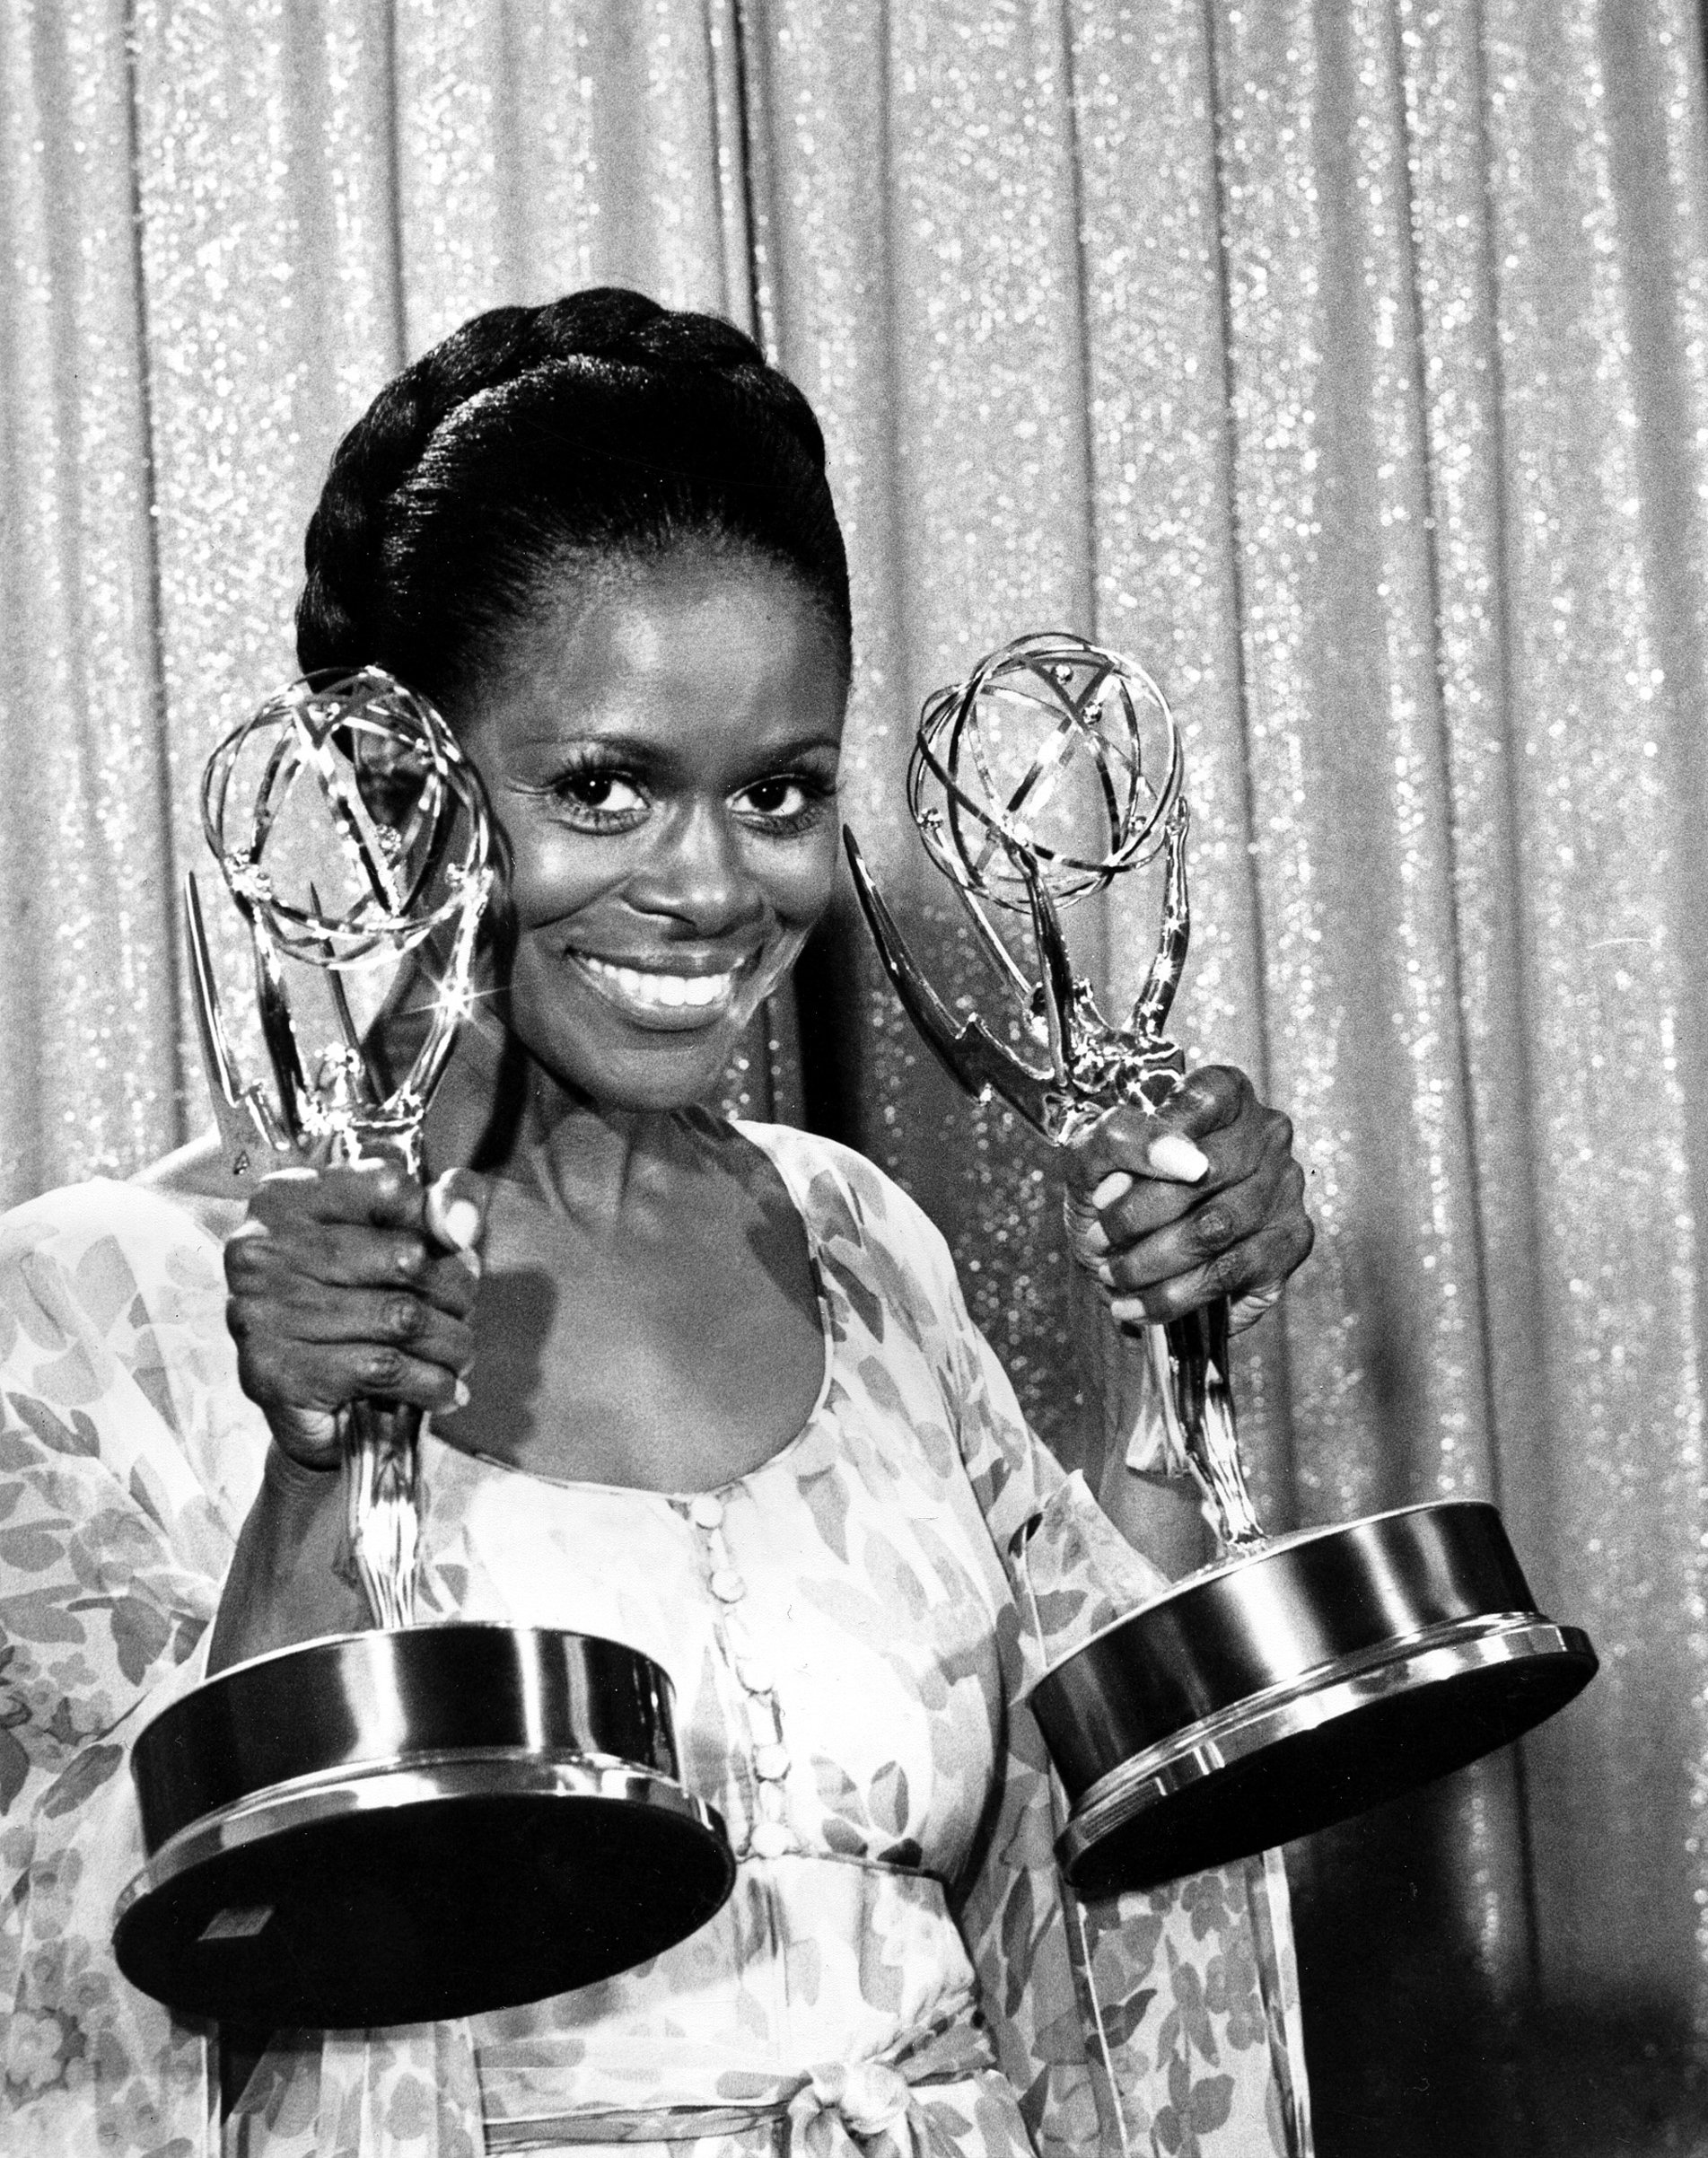 Cicely Tyson poses with her Emmy statuettes at the annual Emmy Awards presentation in Los Angeles, California, U.S., May 28, 1974. (AP Photo)